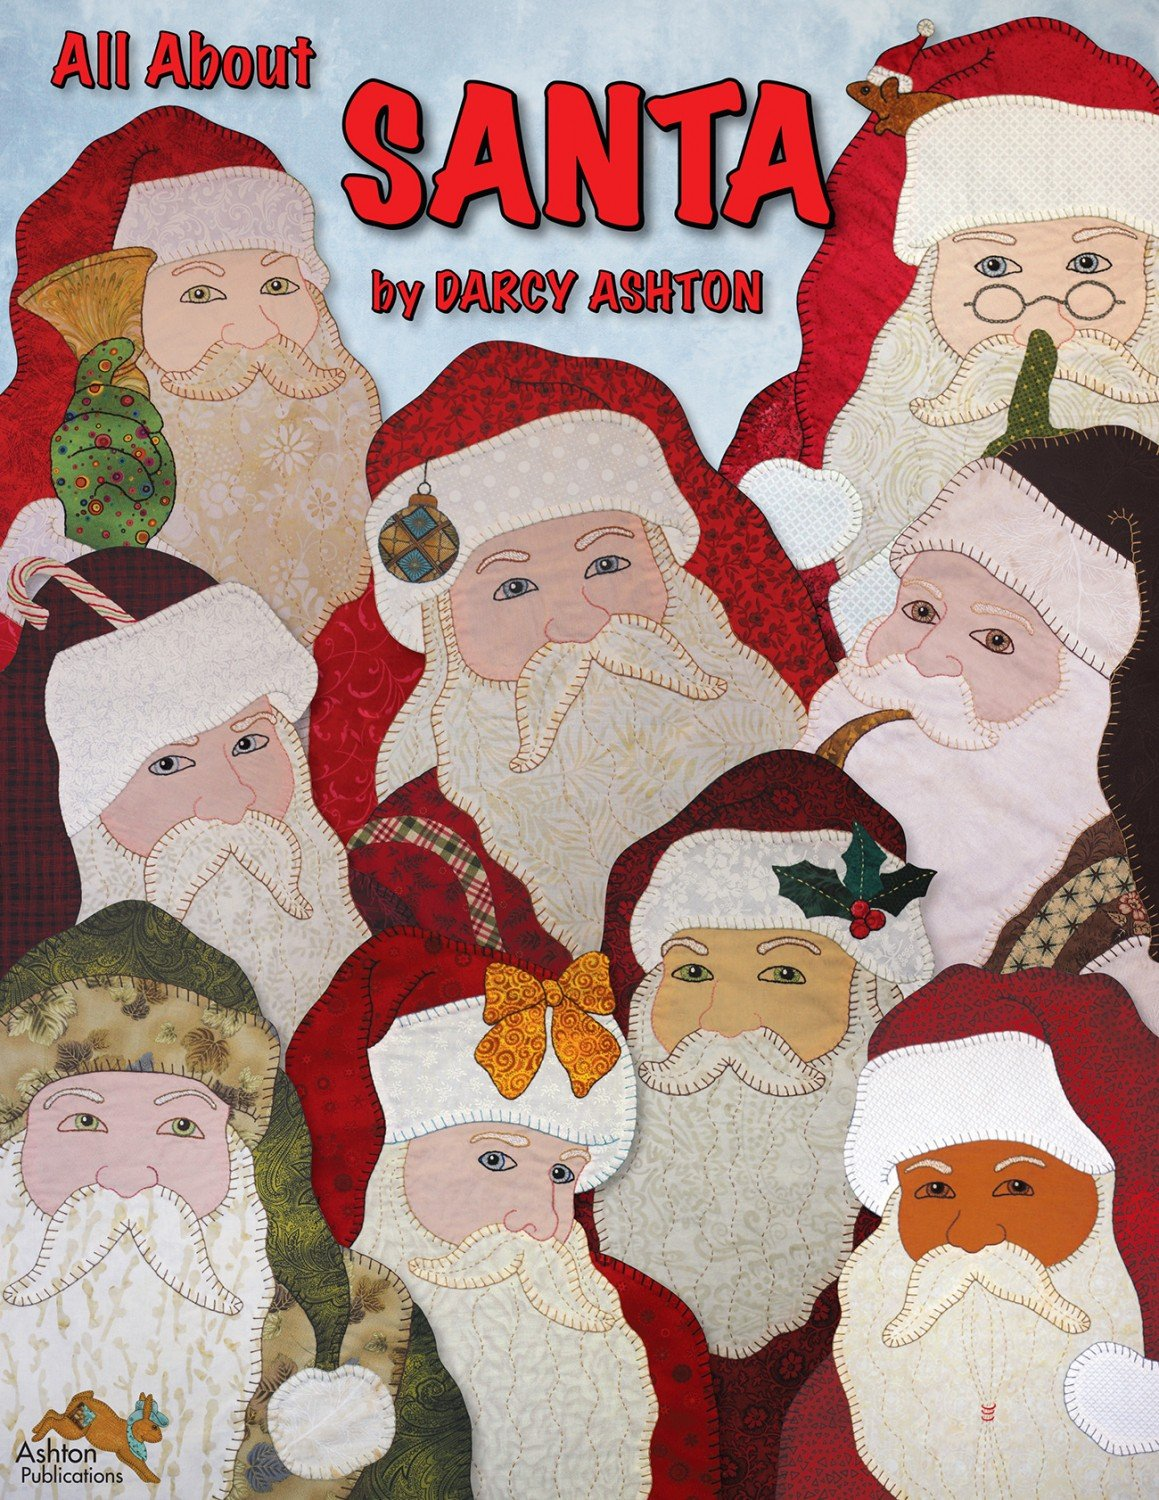 All About Santa Book - *Taking Pre-orders*